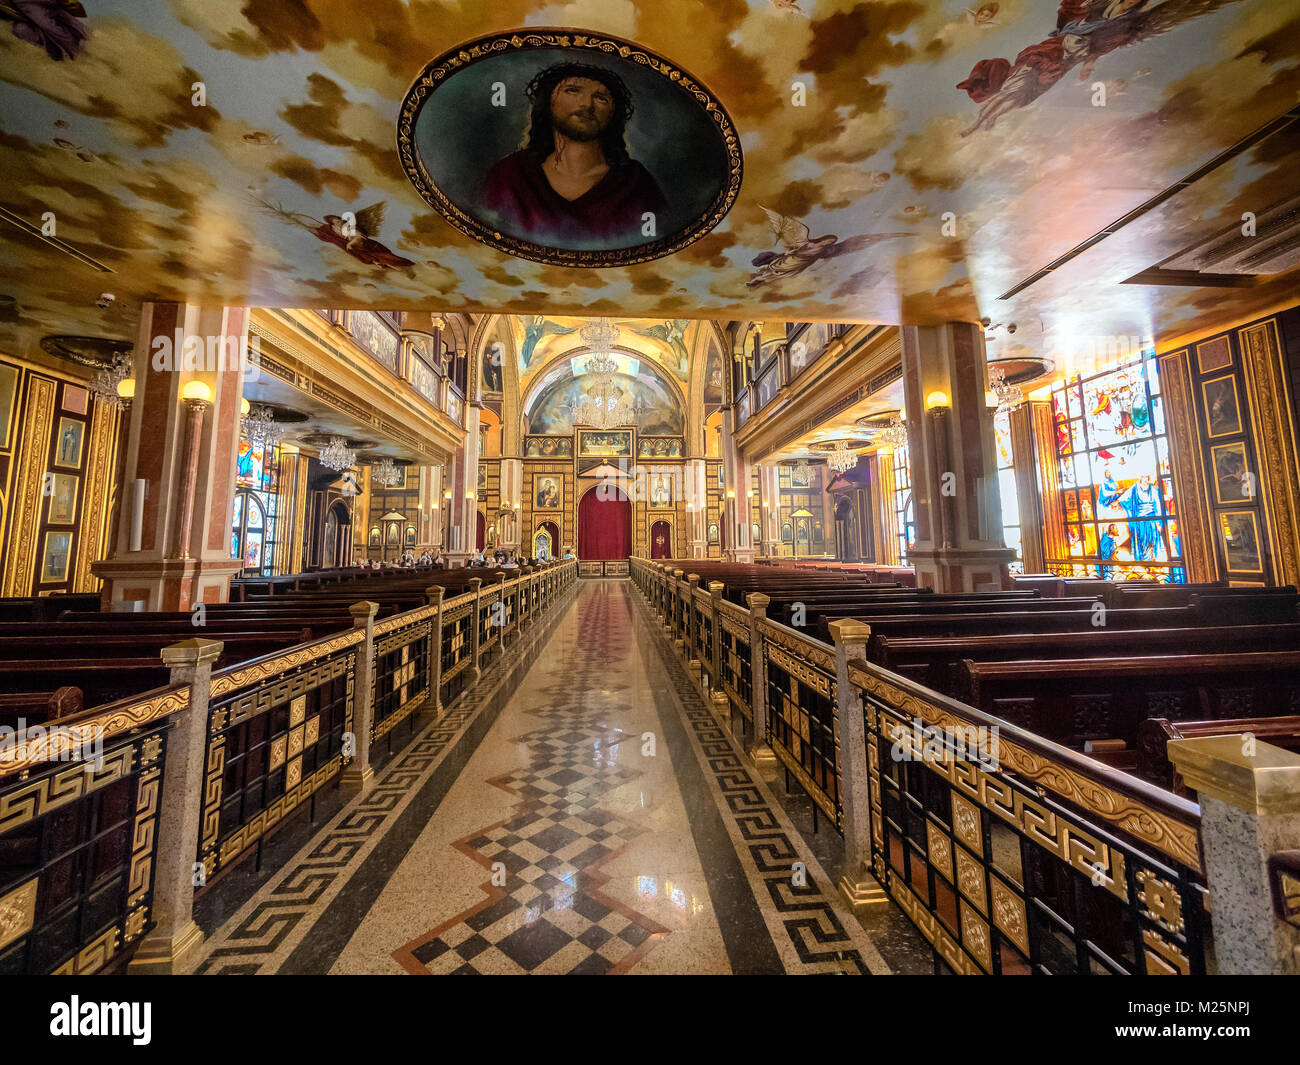 The Heavenly Cathedral in Sharm El Sheikh, Sinai Egypt - Stock Image